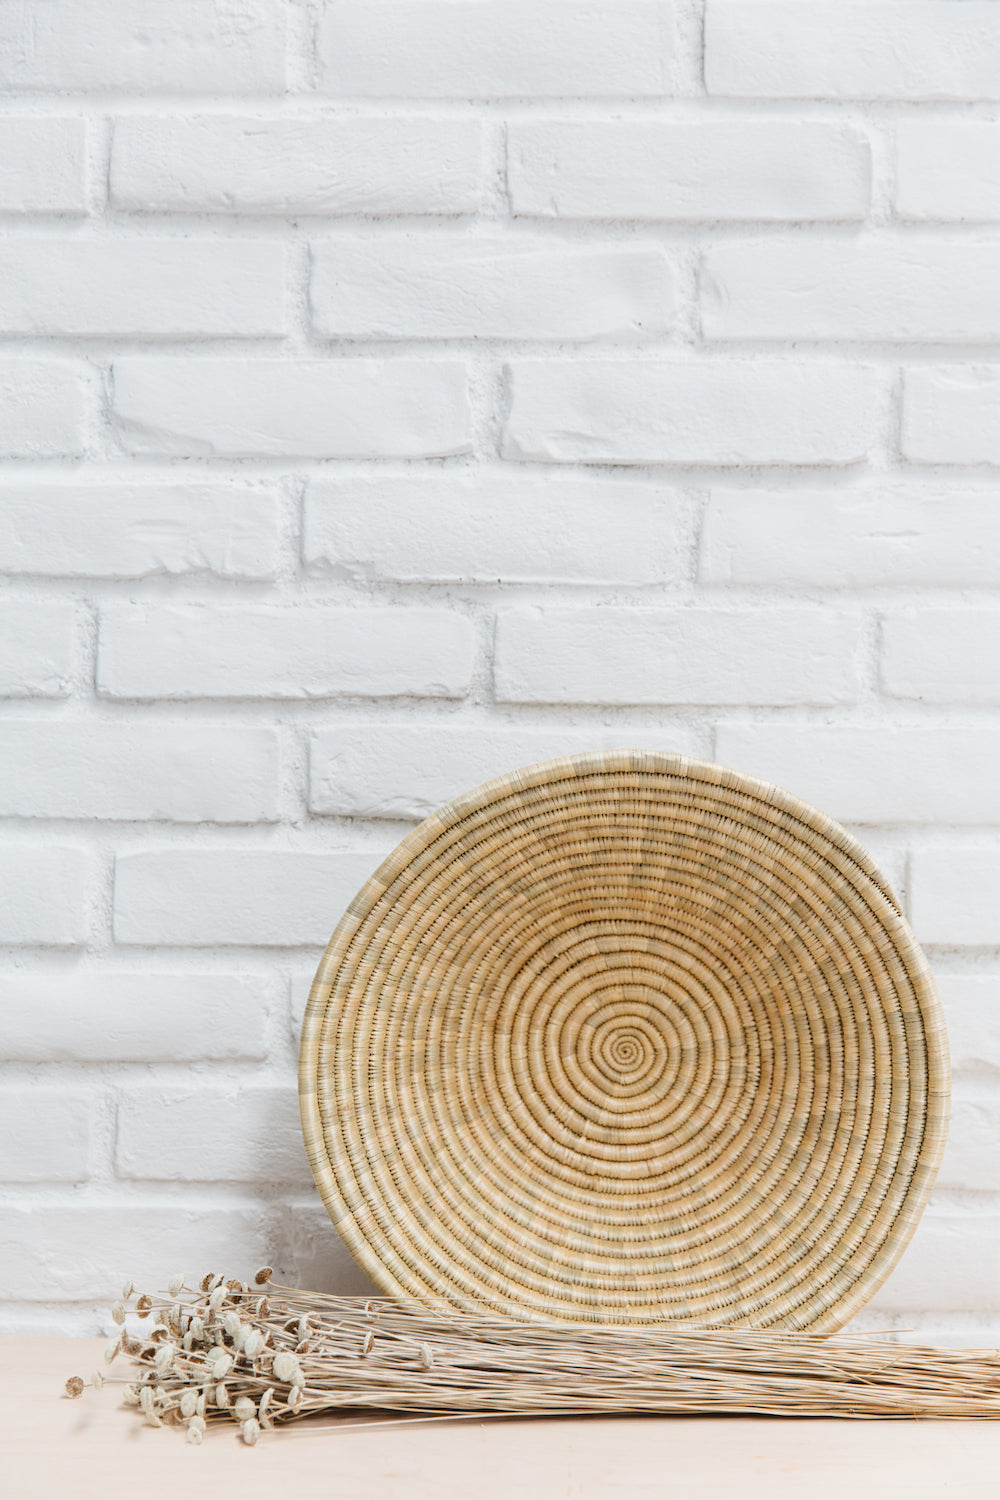 African Handmade Round Table Basket